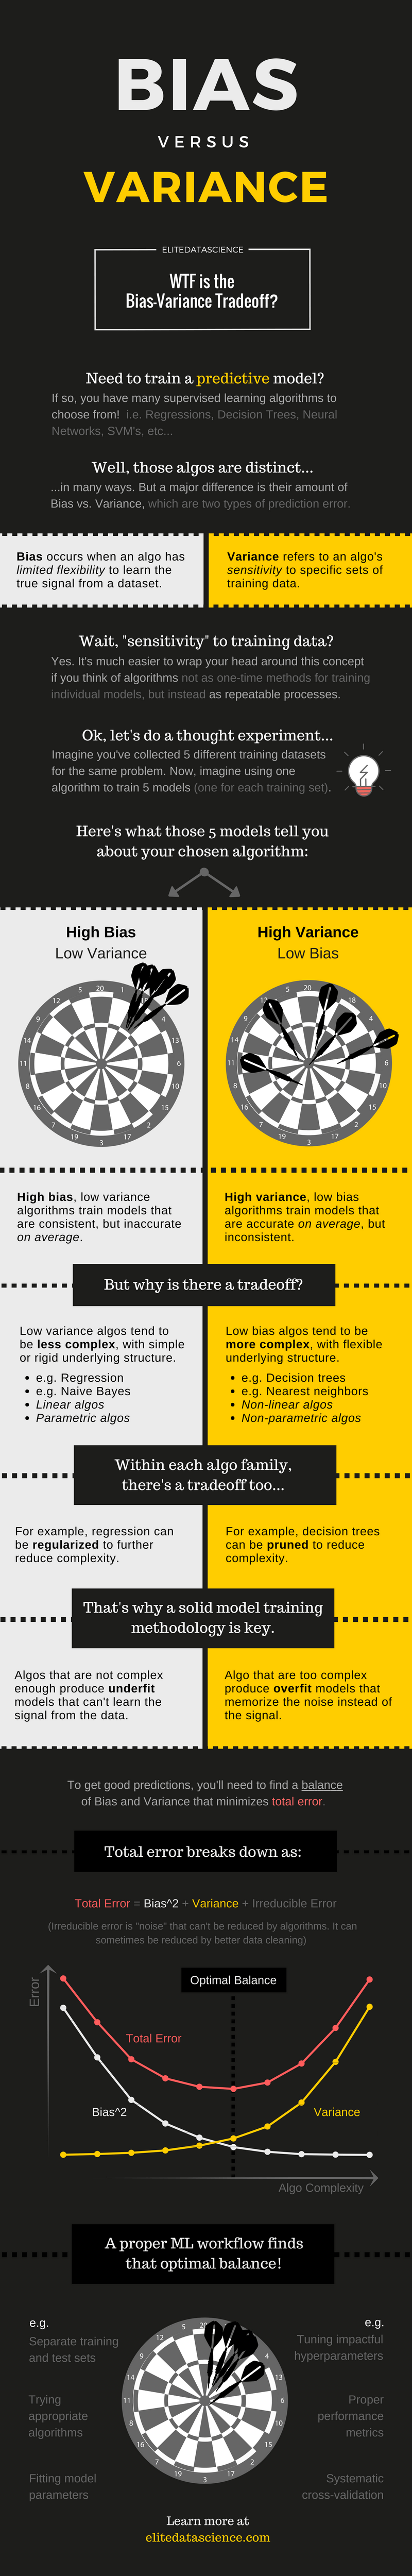 Bias vs. Variance Infographic